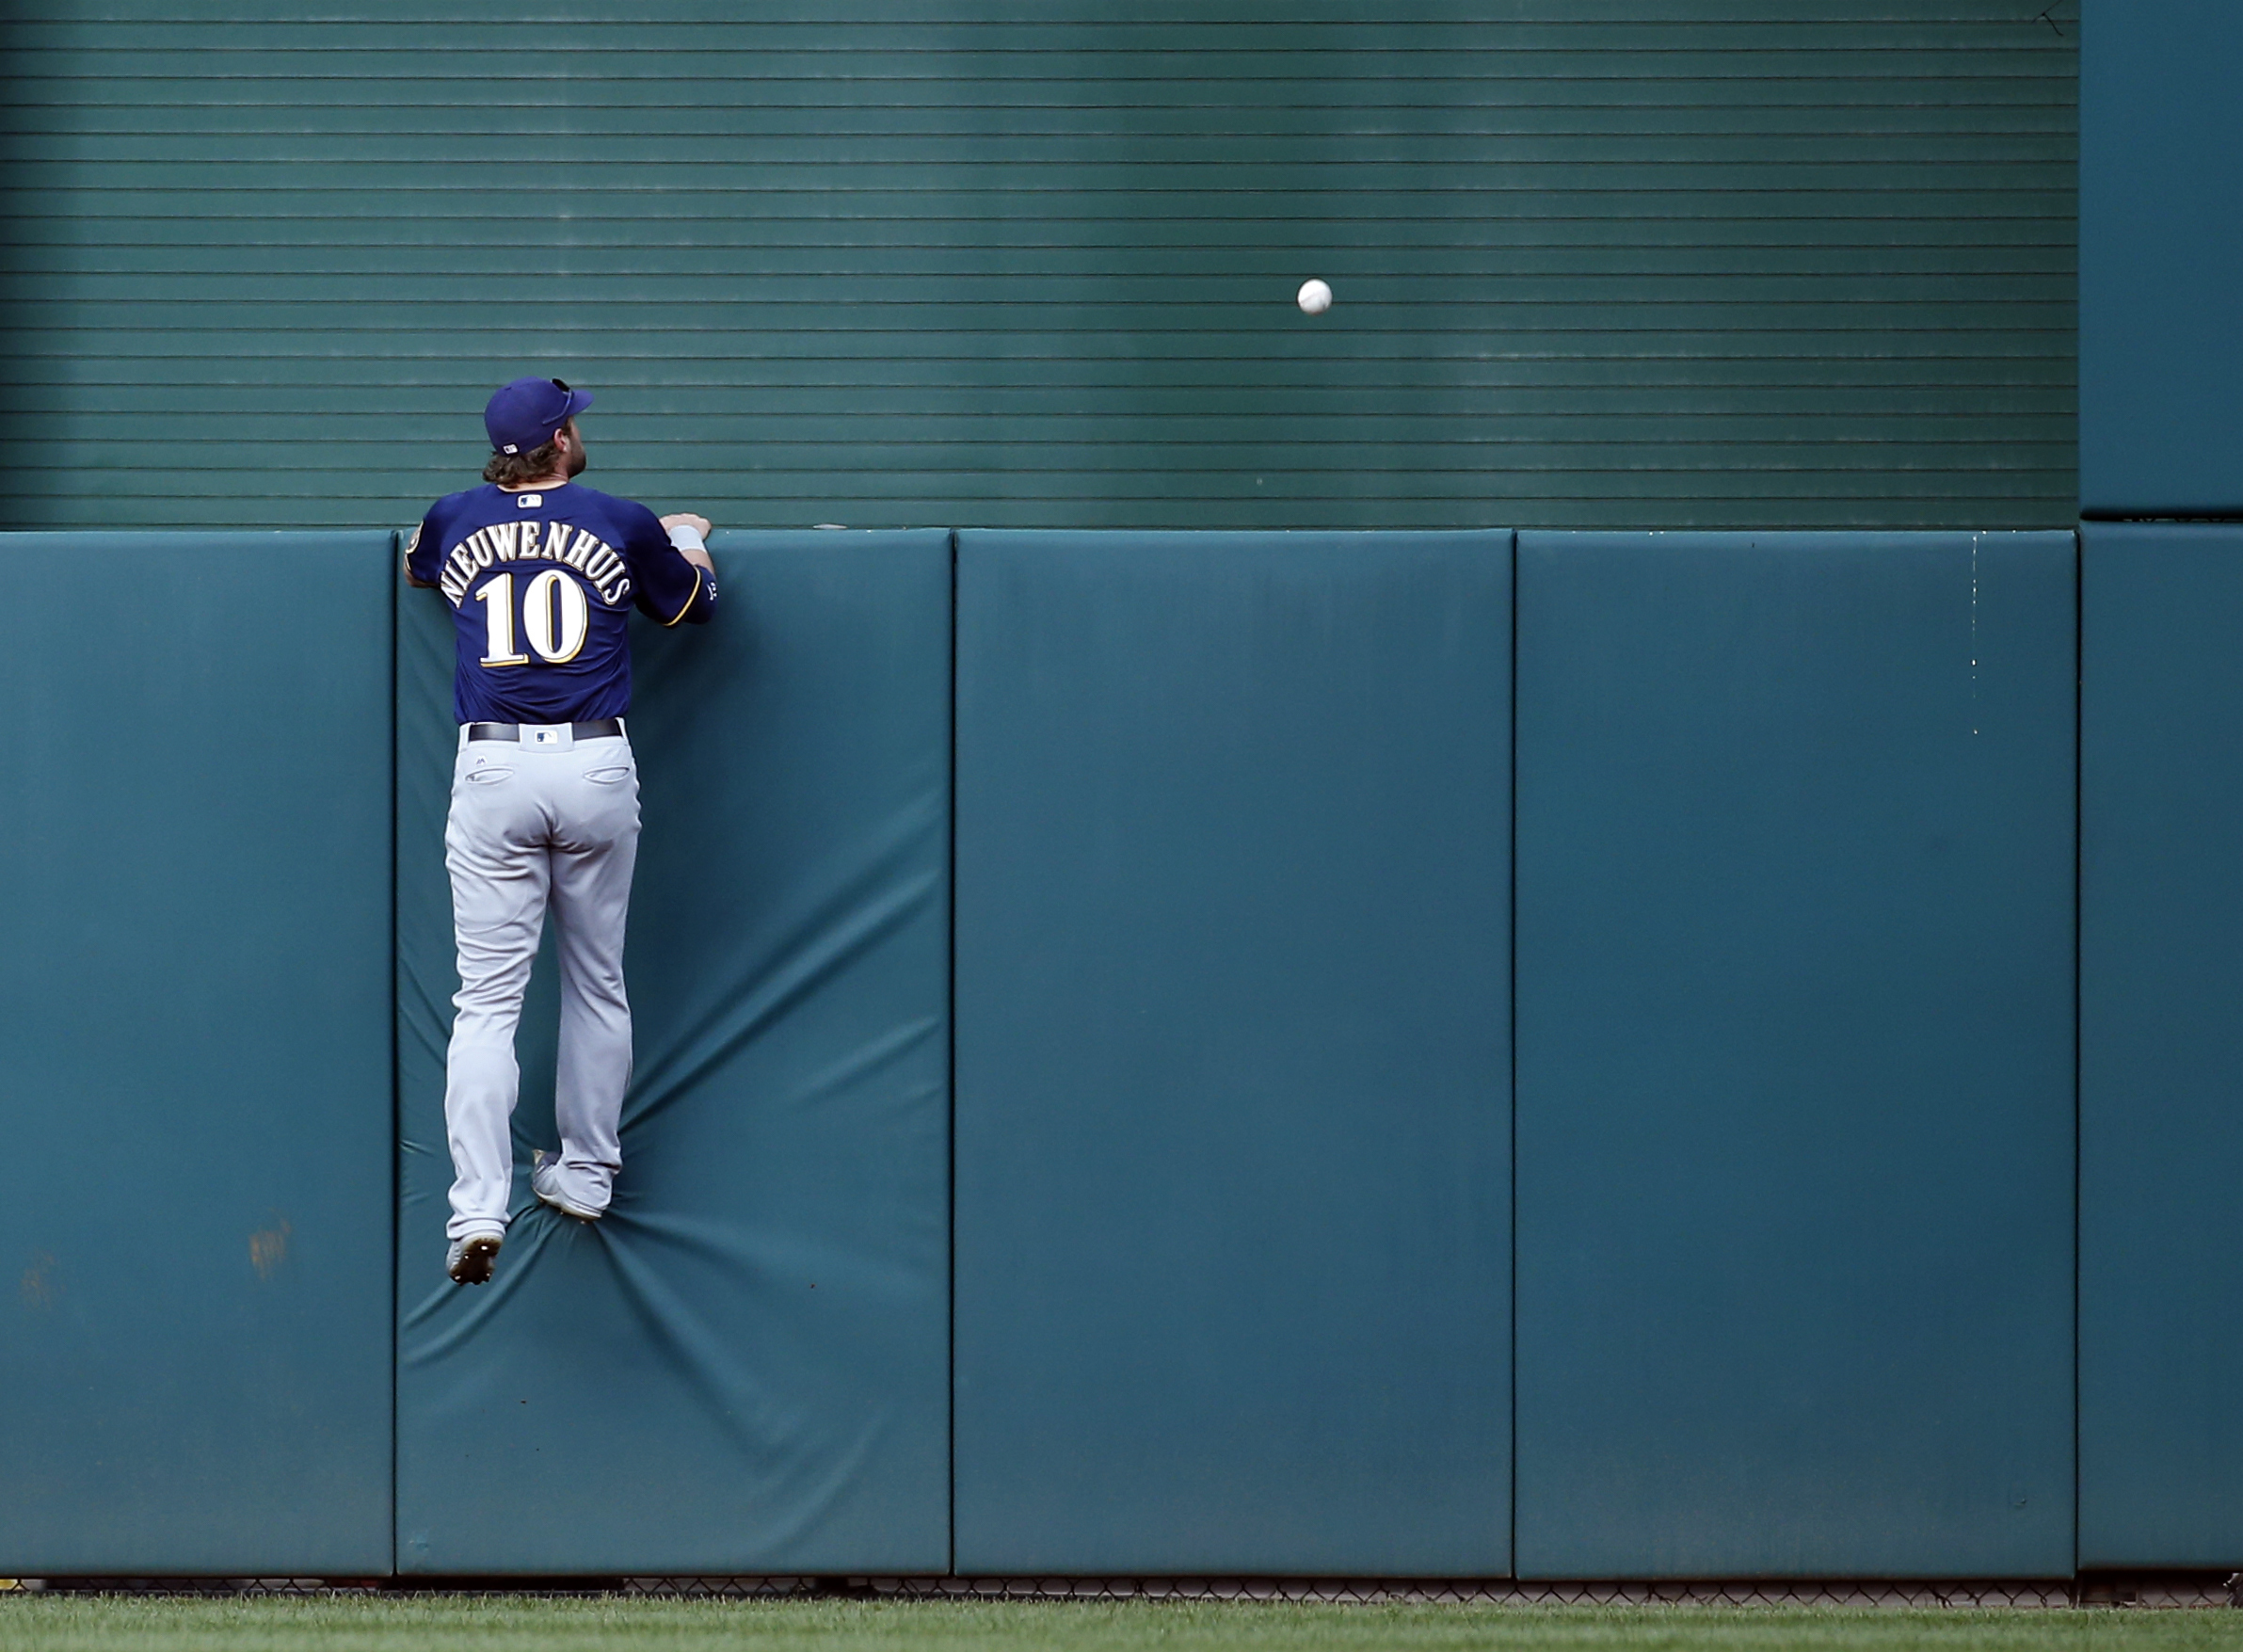 Milwaukee Brewers center fielder Kirk Nieuwenhuis is unable to get to a two-run homer by Washington Nationals' Ryan Zimmerman during the fifth inning of a baseball game at Nationals Park, Wednesday, July 6, 2016, in Washington. (AP Photo/Alex Brandon)